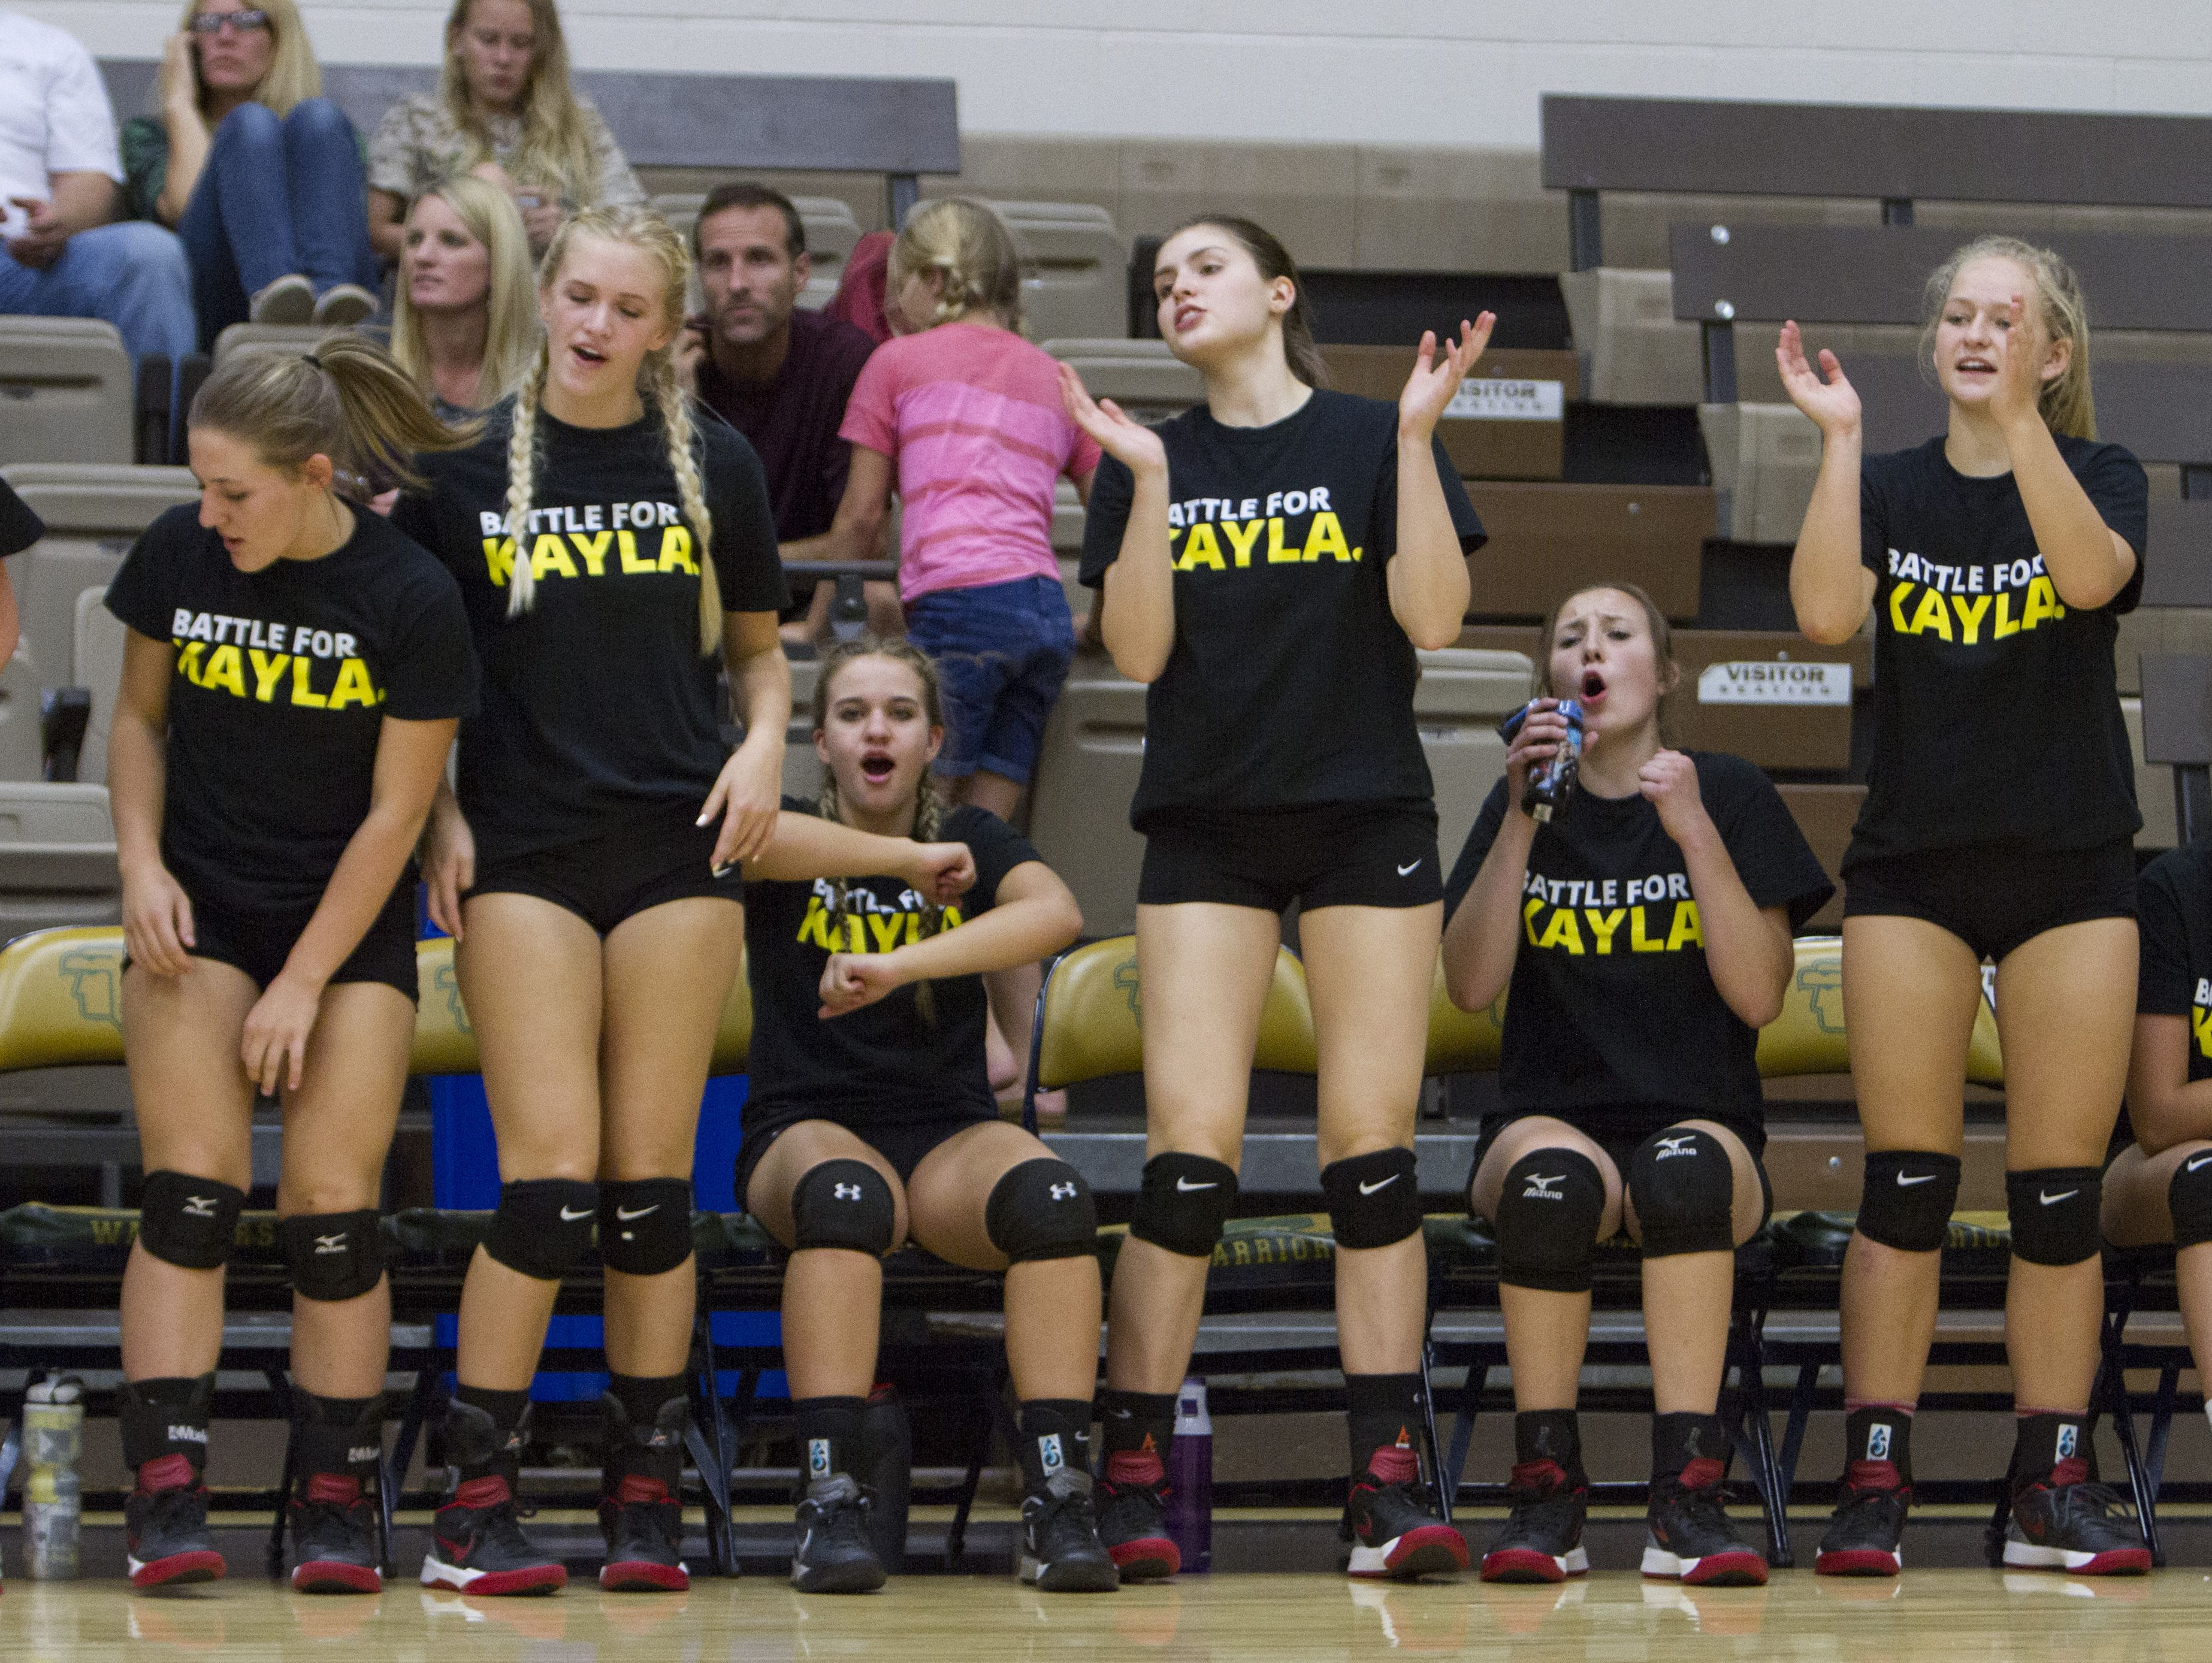 Members of the Hurricane High School volleyball team wear yellow shirts in support of Mackayla Marshall, the daughter of Hurricane High volleyball coach Content Marshall and who was recently diagnosed with cancer Thursday, Sept. 22, 2016.